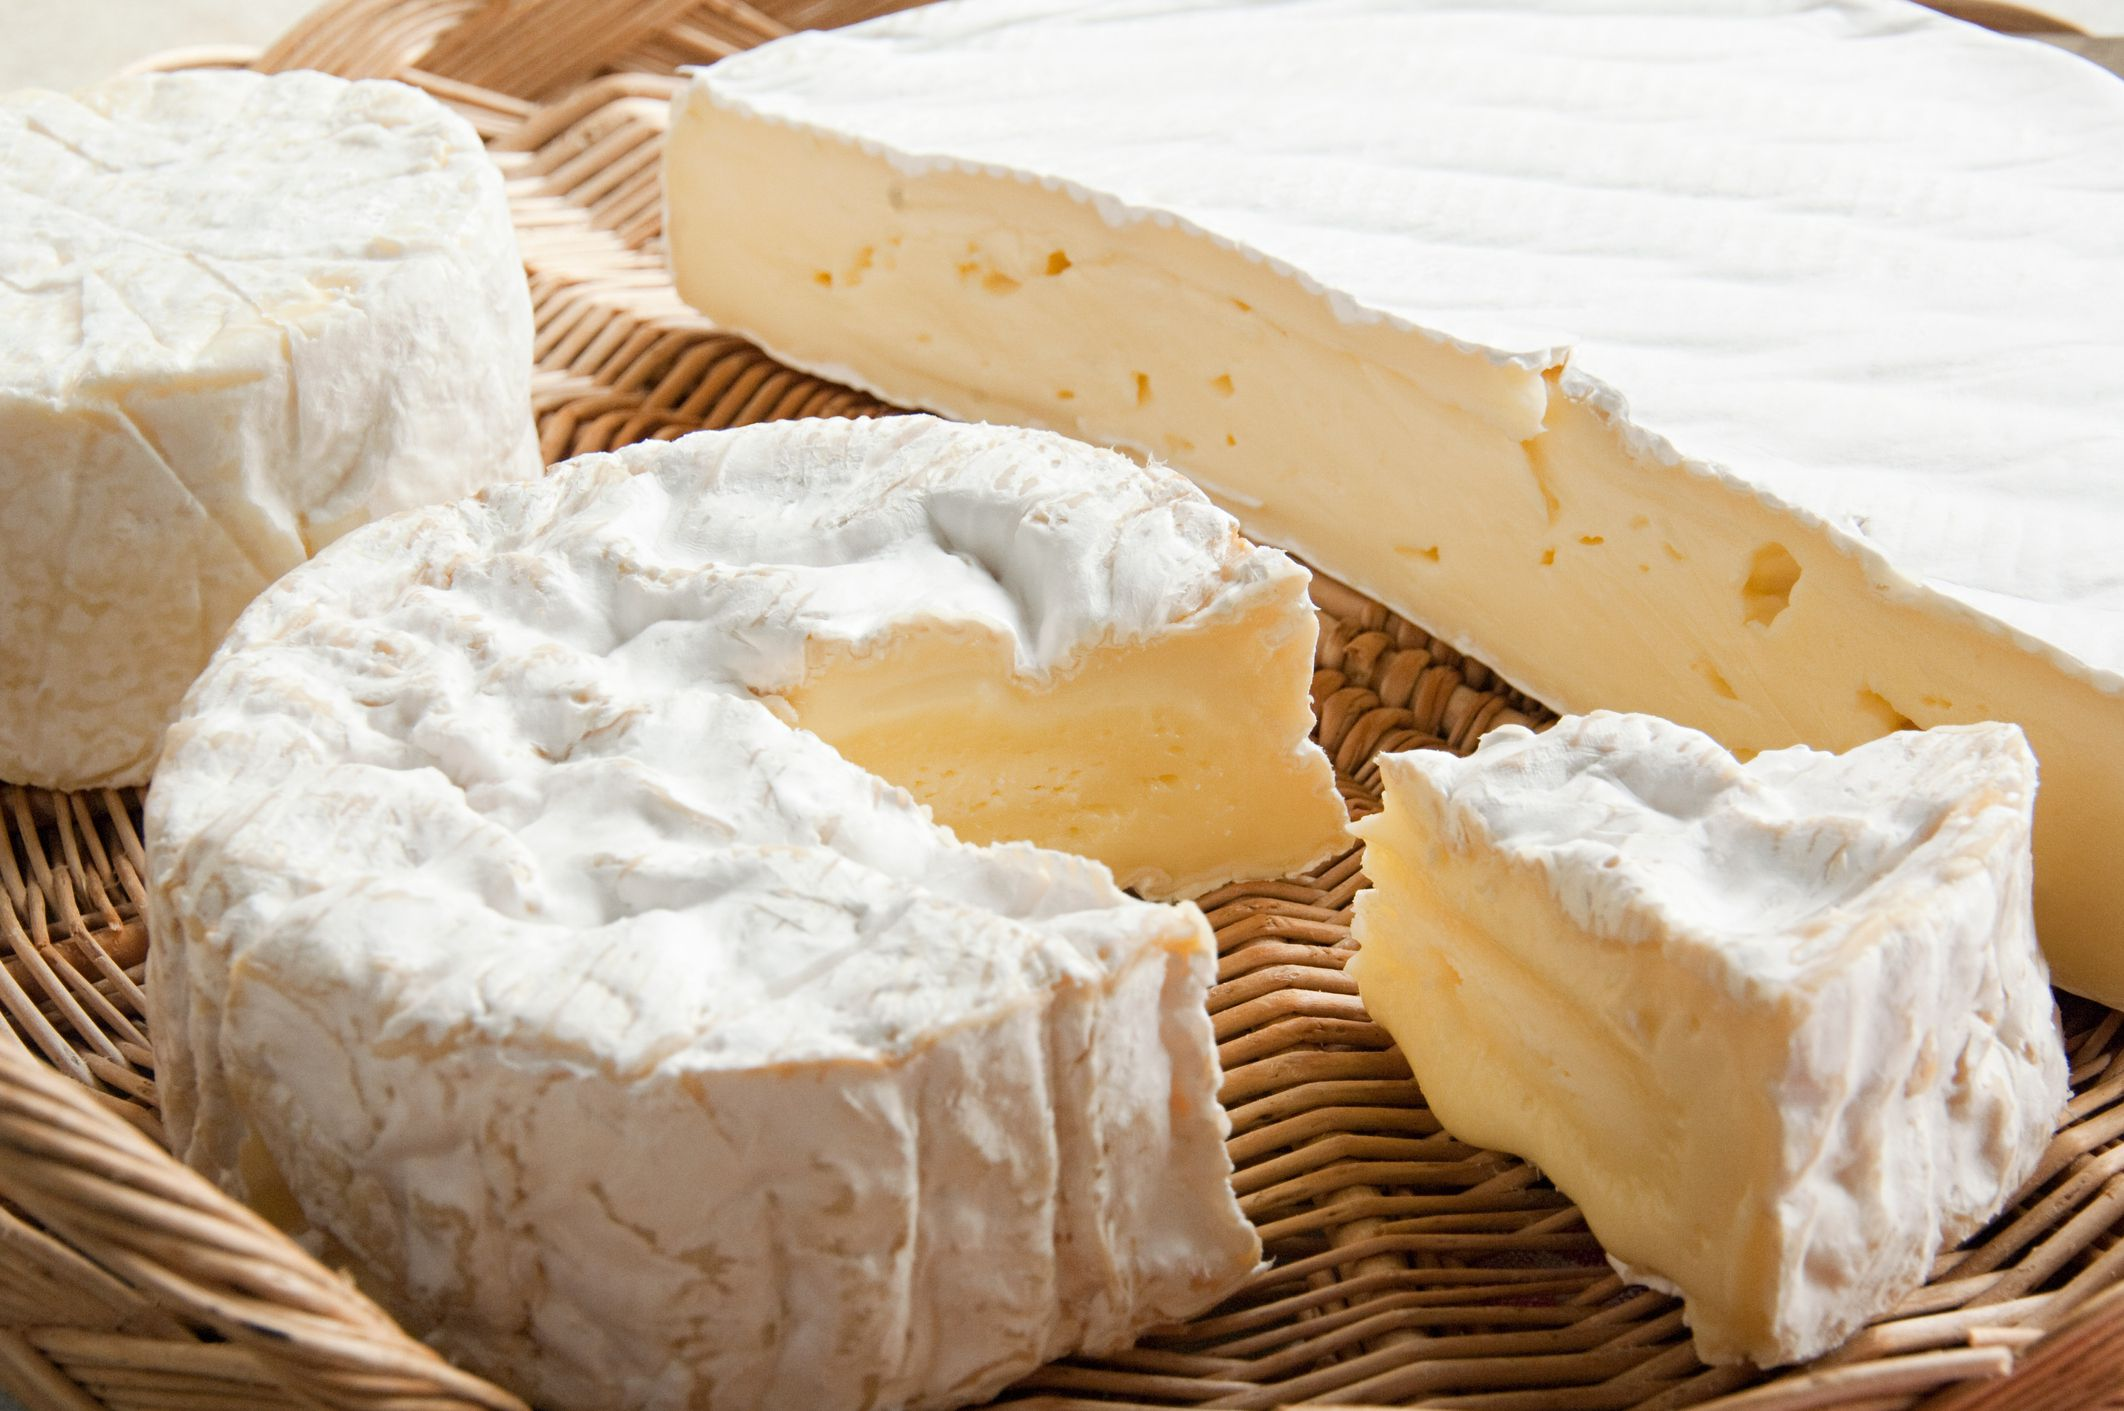 Are Cheese Rinds Edible?